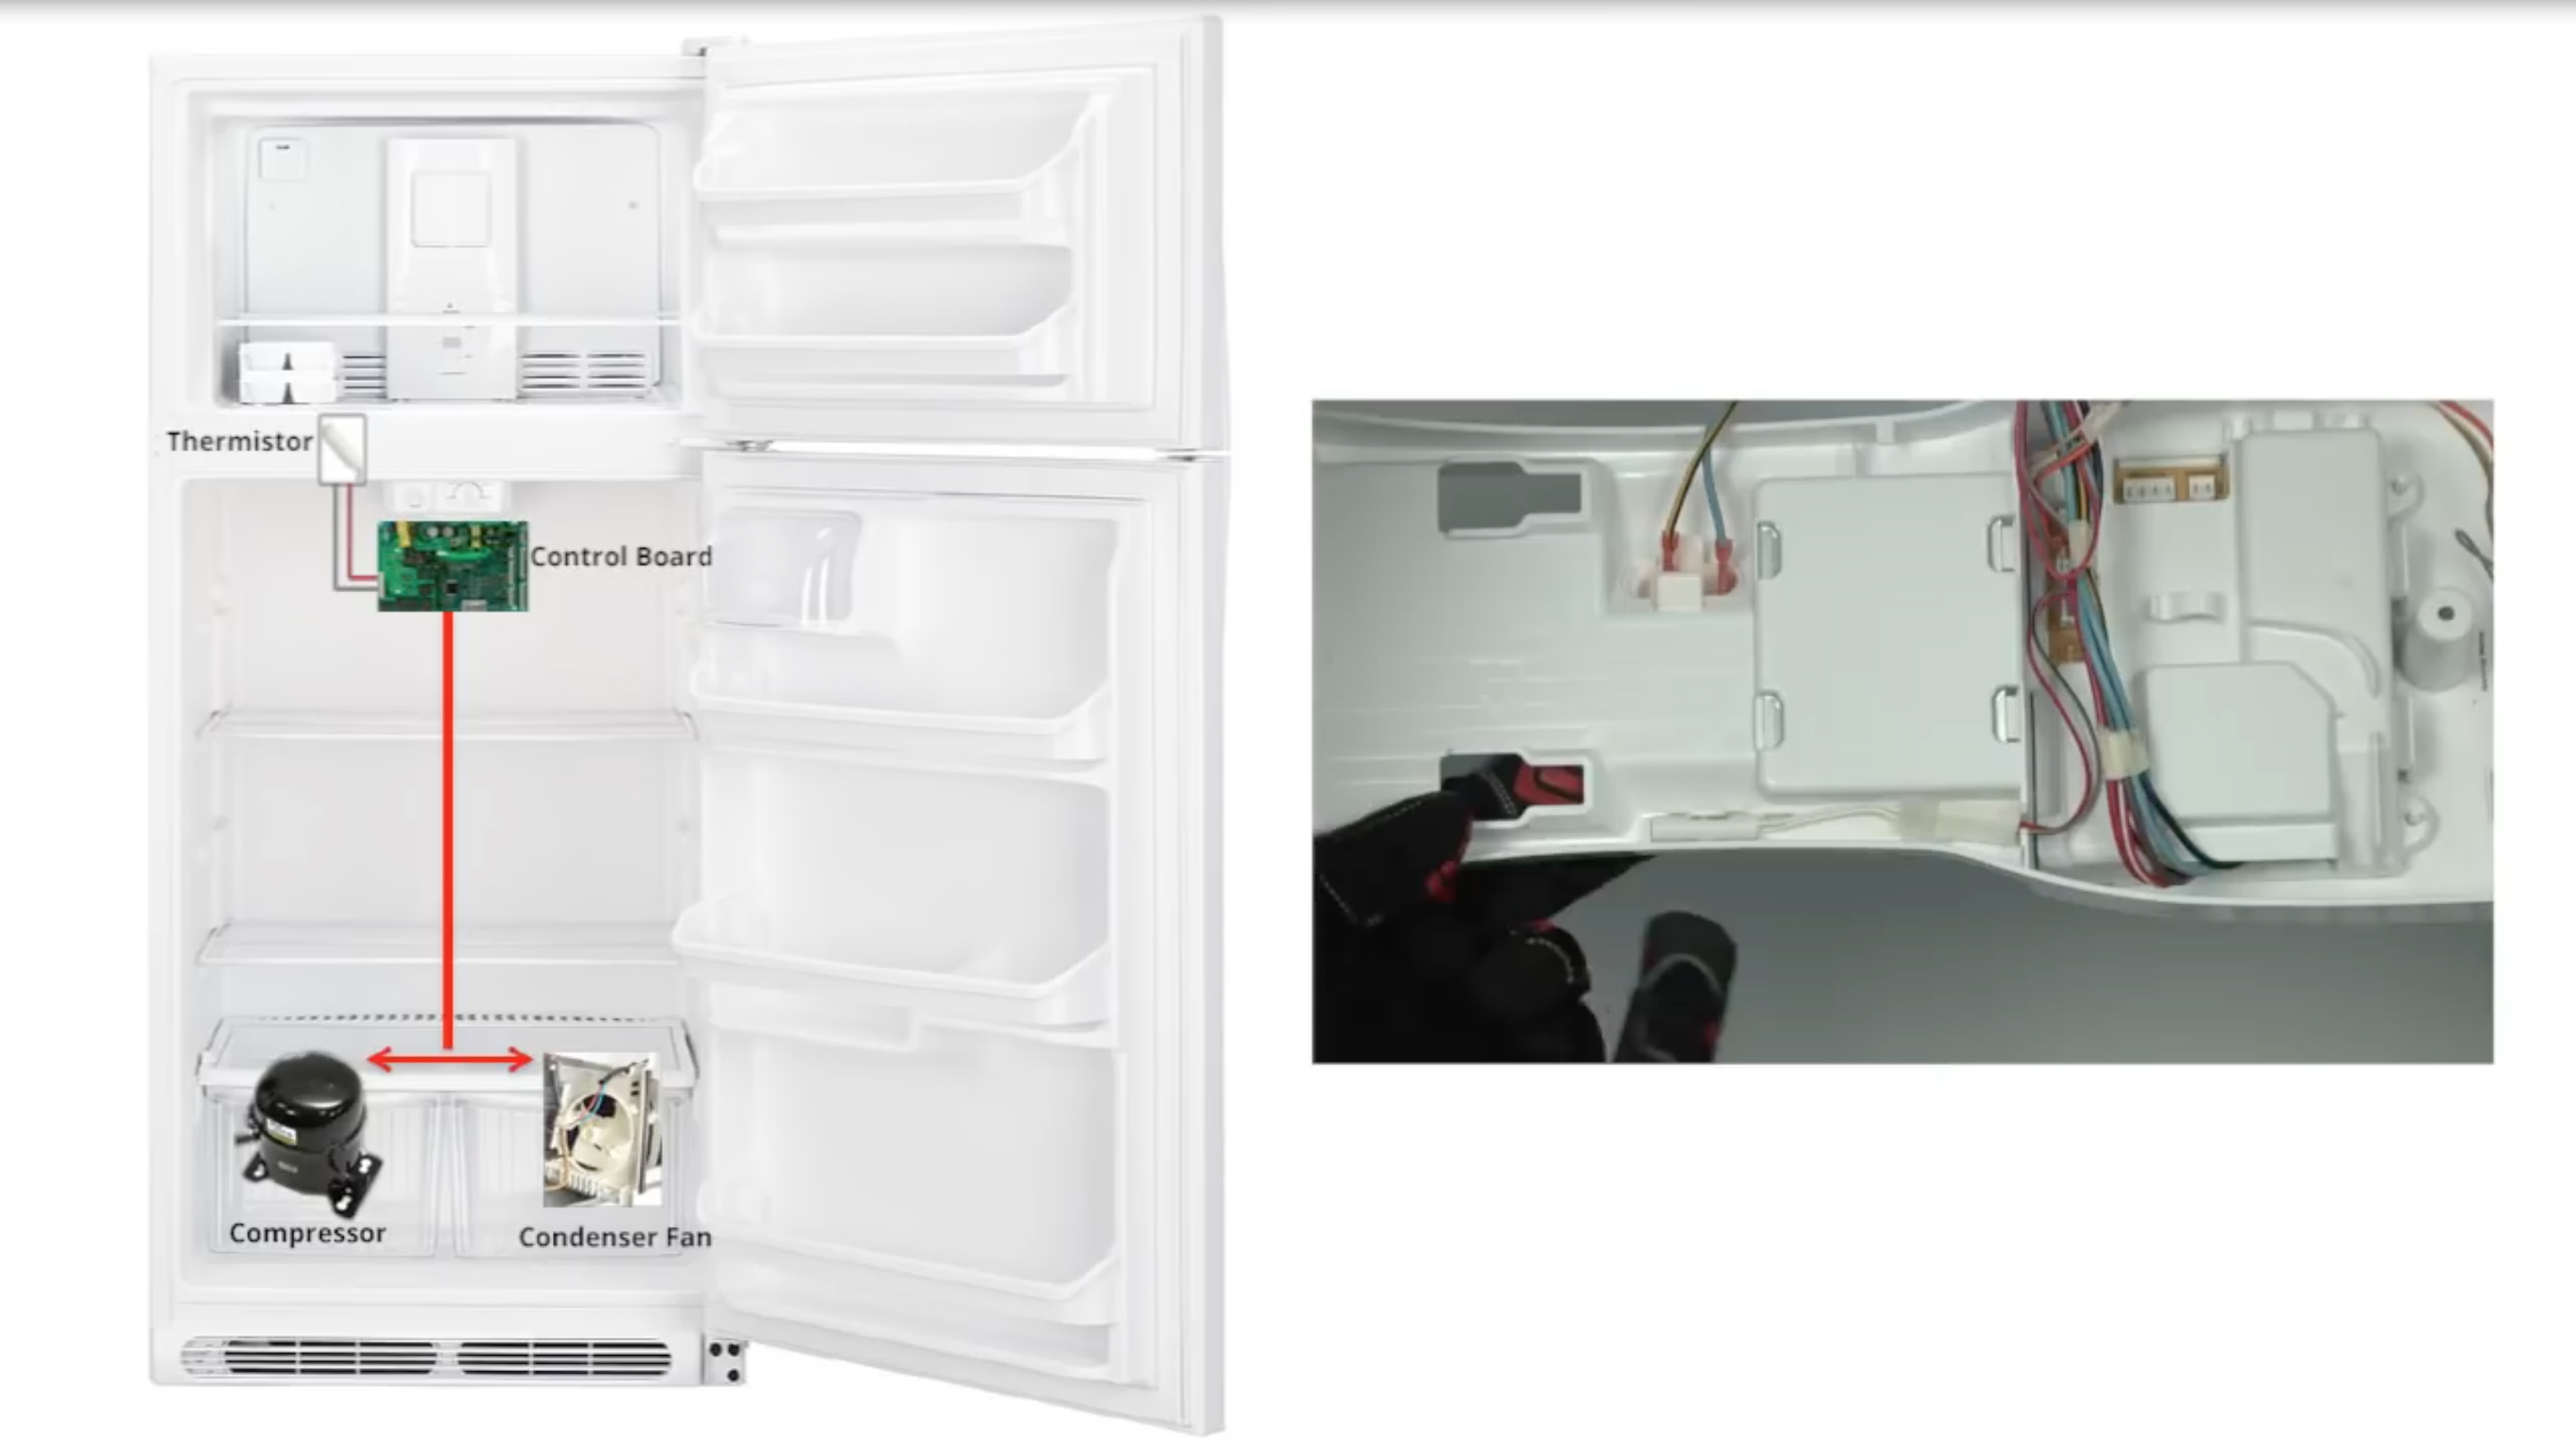 Refrigerator repair guides and videos